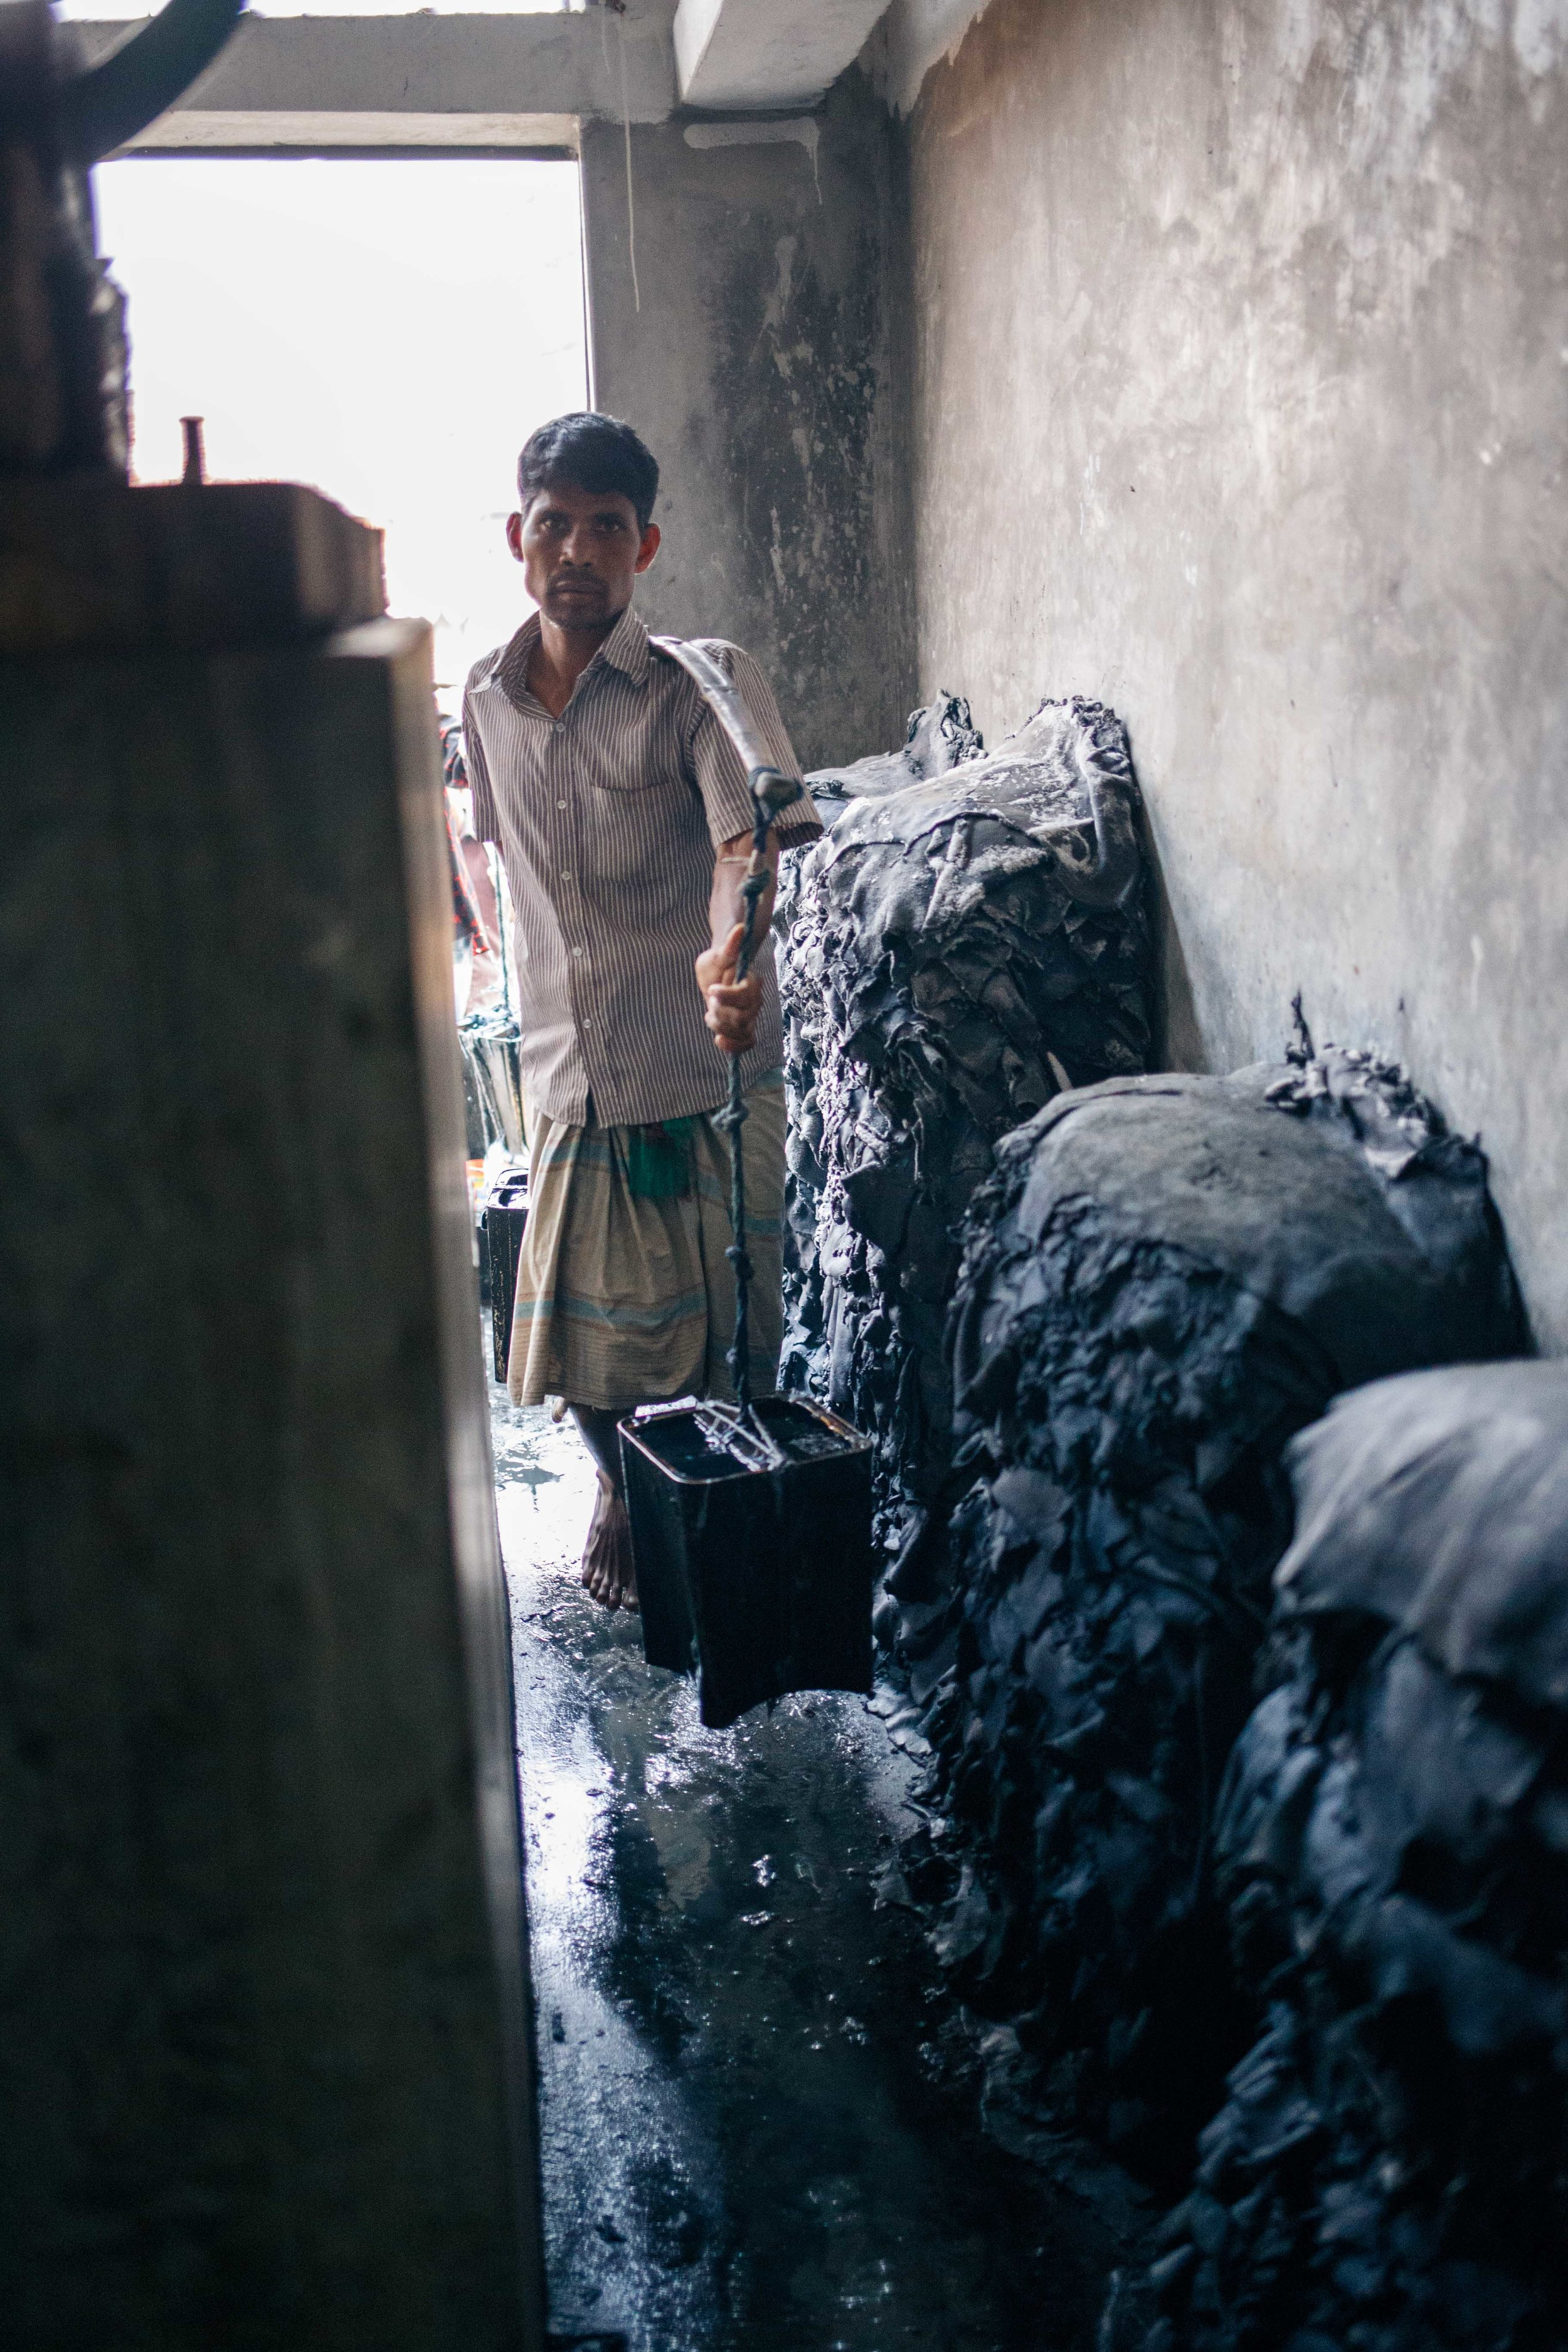 A man carries buckets of acid to dump into the bleaching pits.